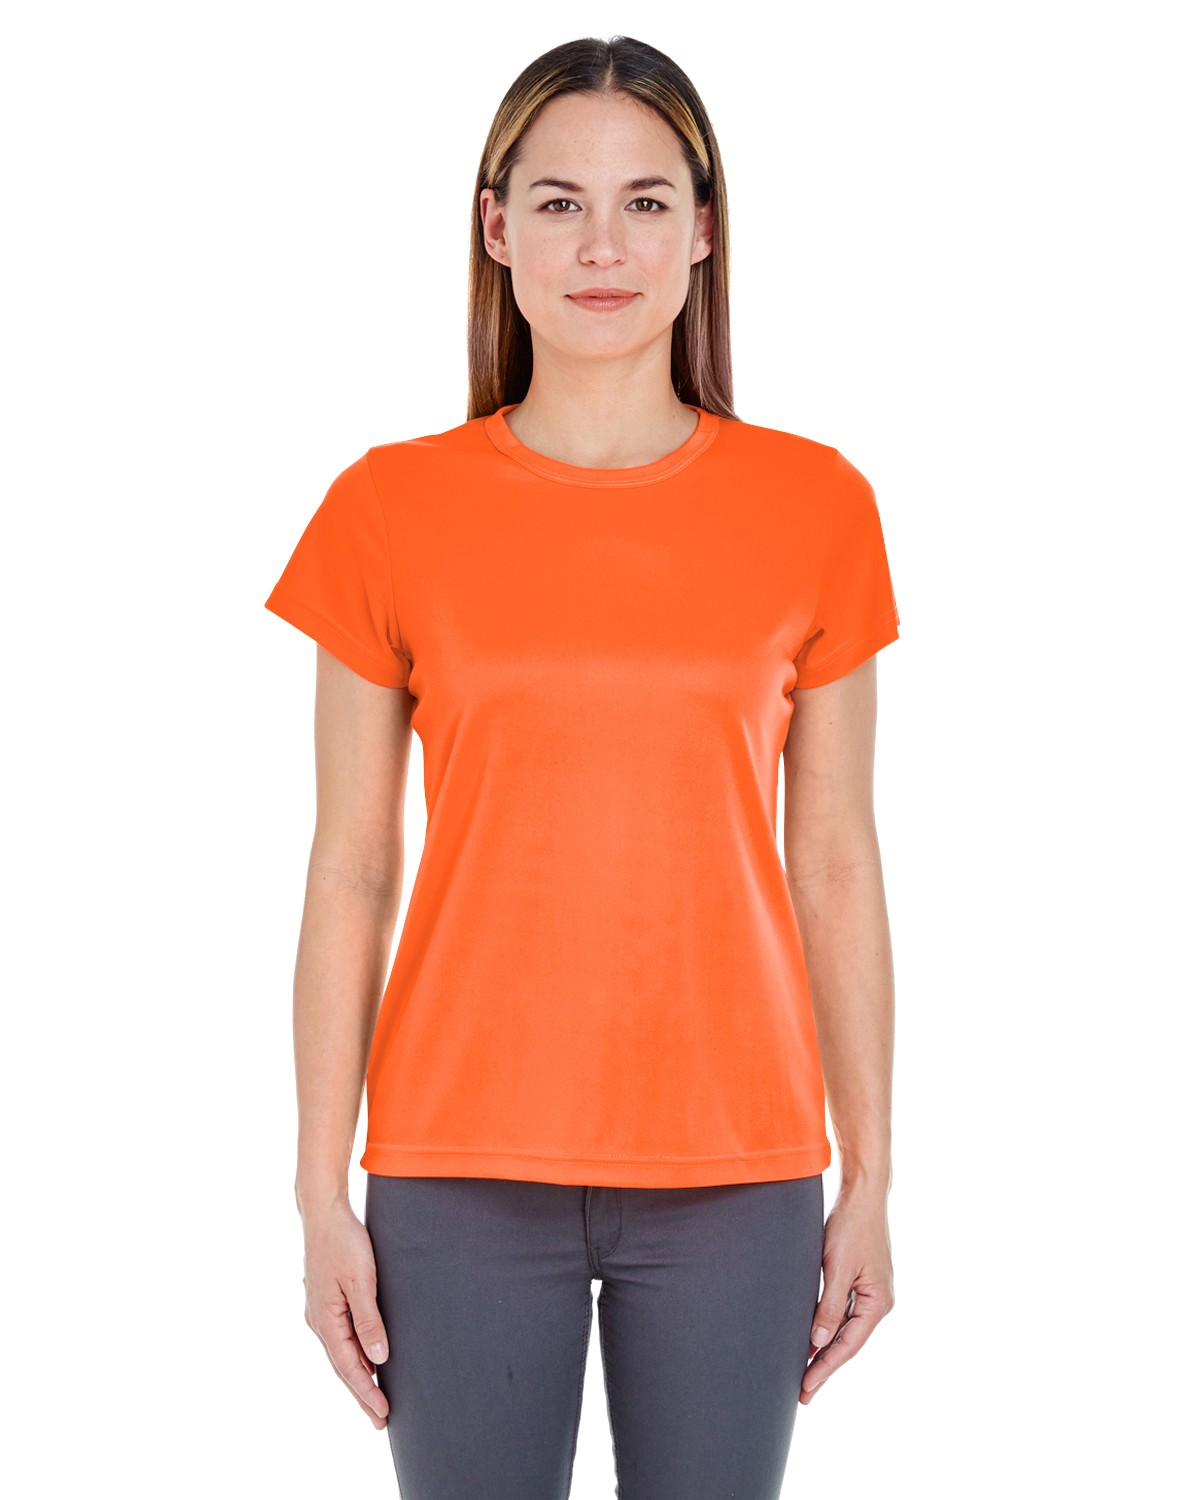 8420L UltraClub BRIGHT ORANGE